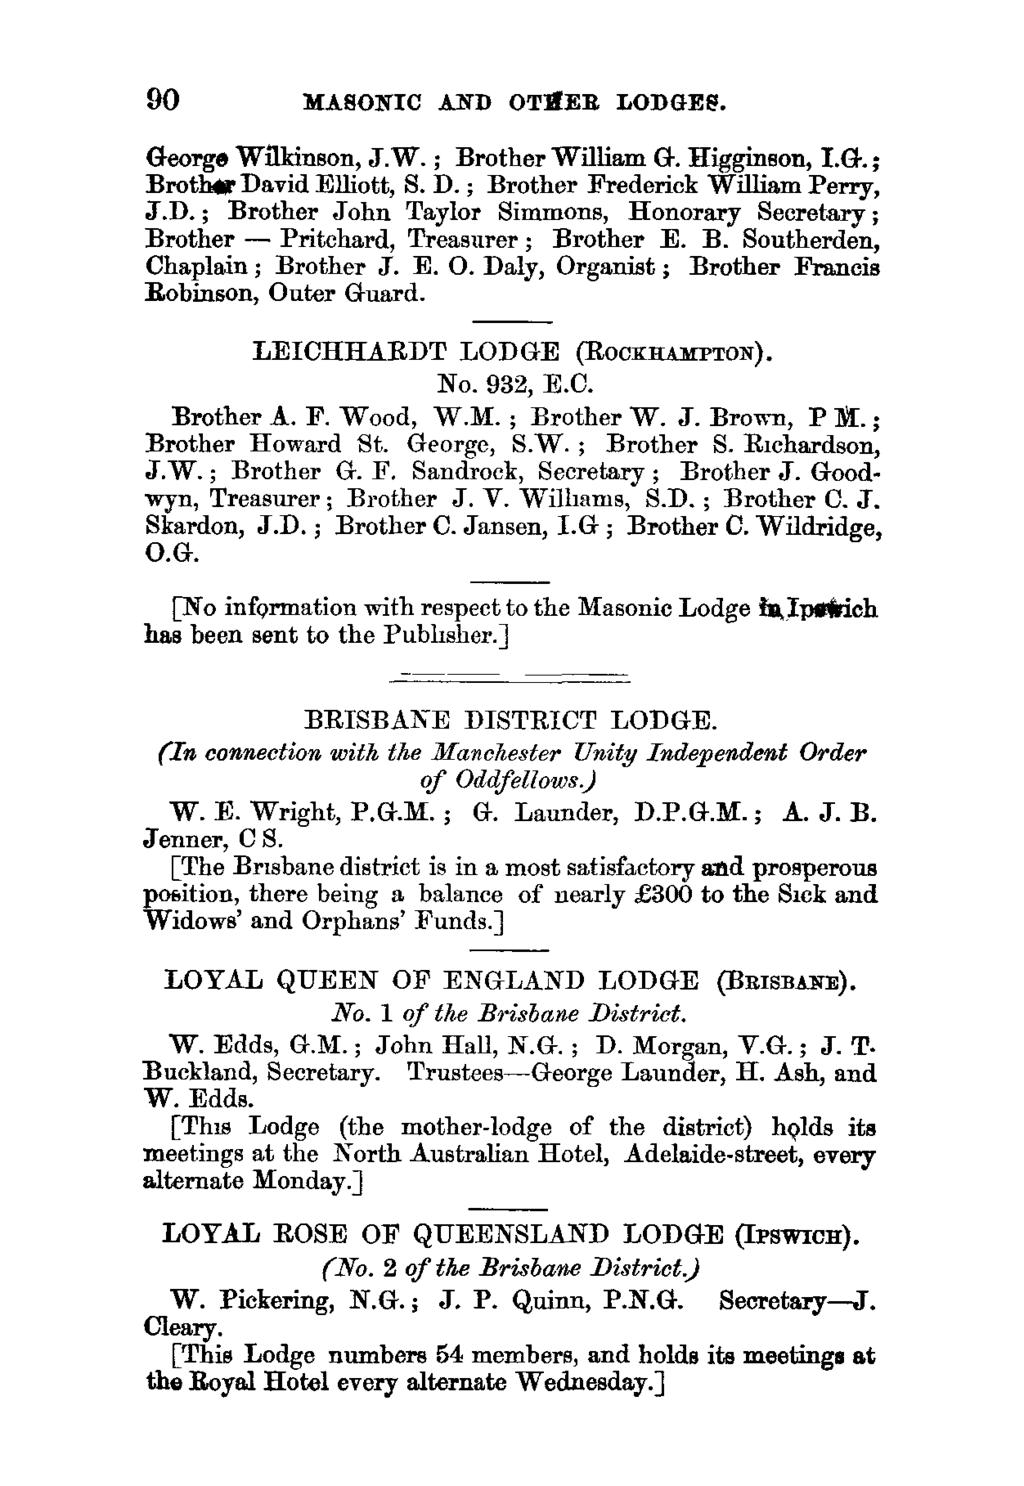 90 MASONIC AND OTHER LODGES. George Wilkinson, JW.; Brother William G. Higginson, I.G.; Broth& David Elliott, S. D. ; Brother Frederick William Perry, J.D.; Brother John Taylor Simmons, Honorary Secretary ; Brother - Pritchard, Treasurer ; Brother E.